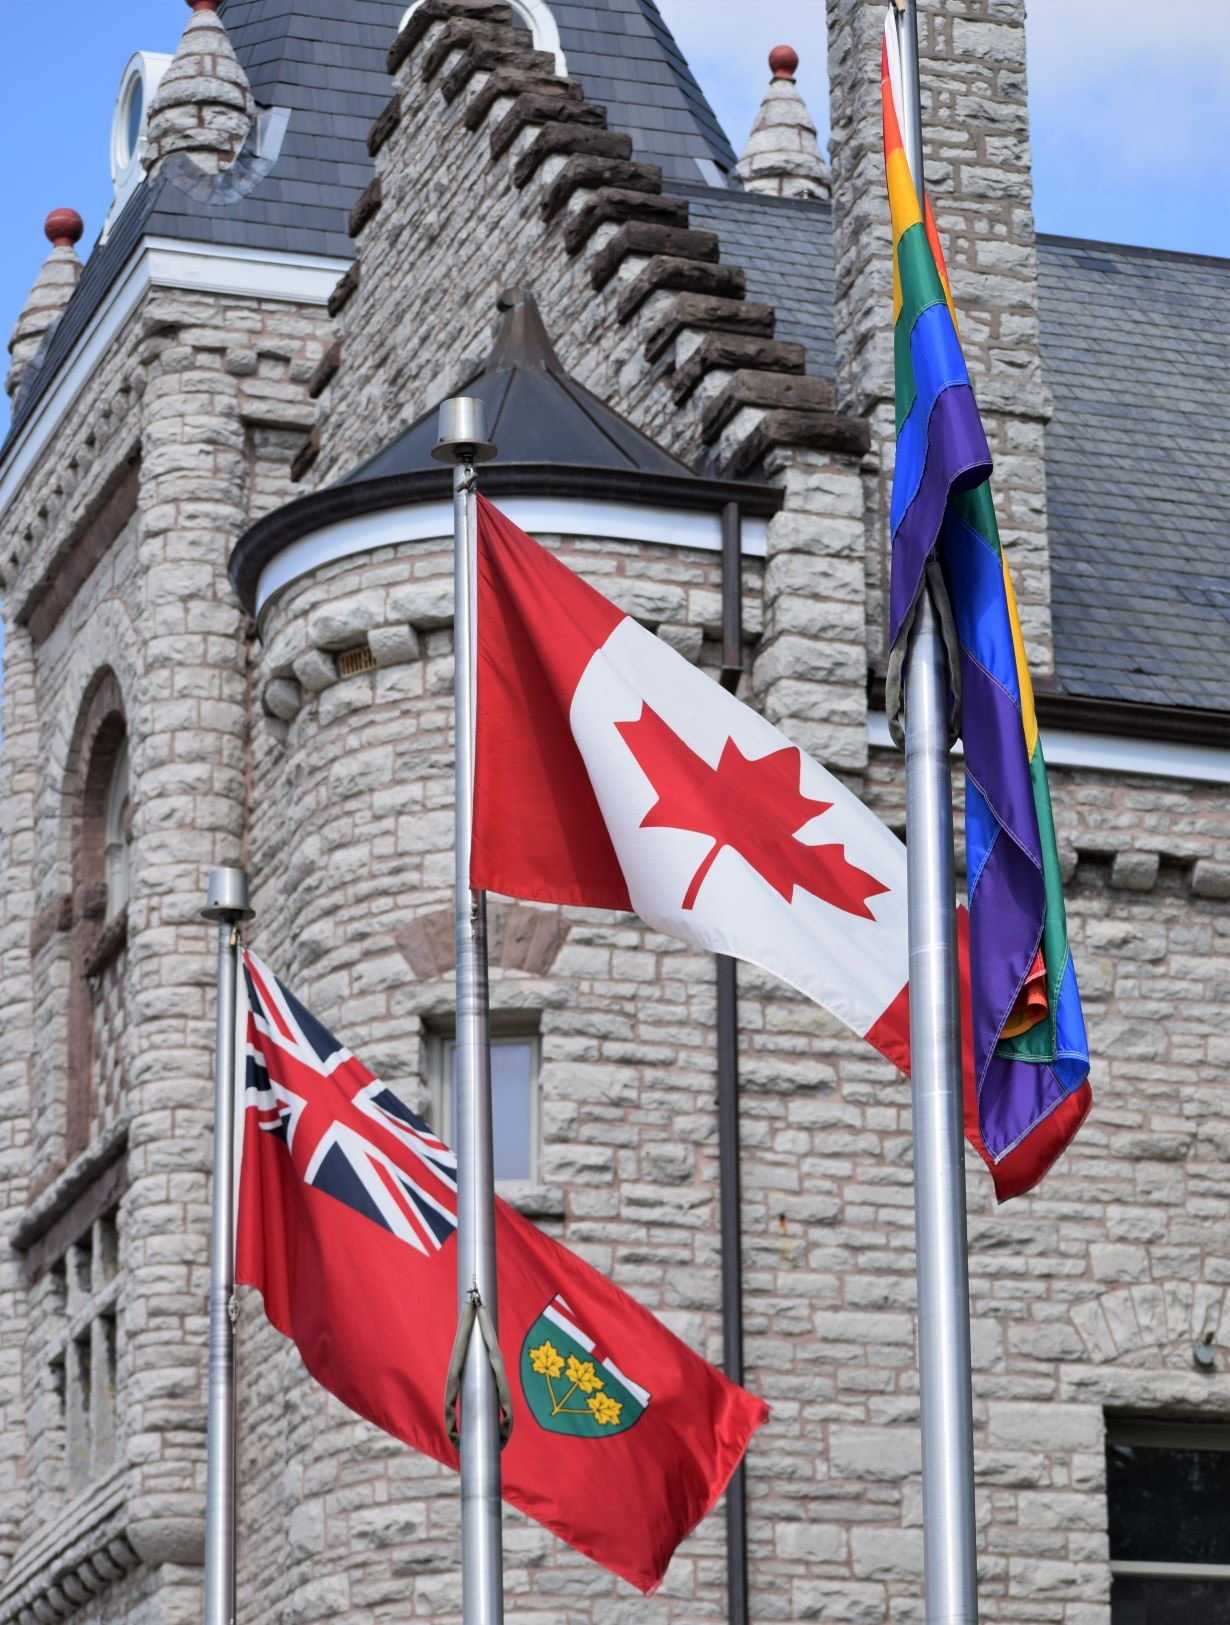 Flags at Town Hall